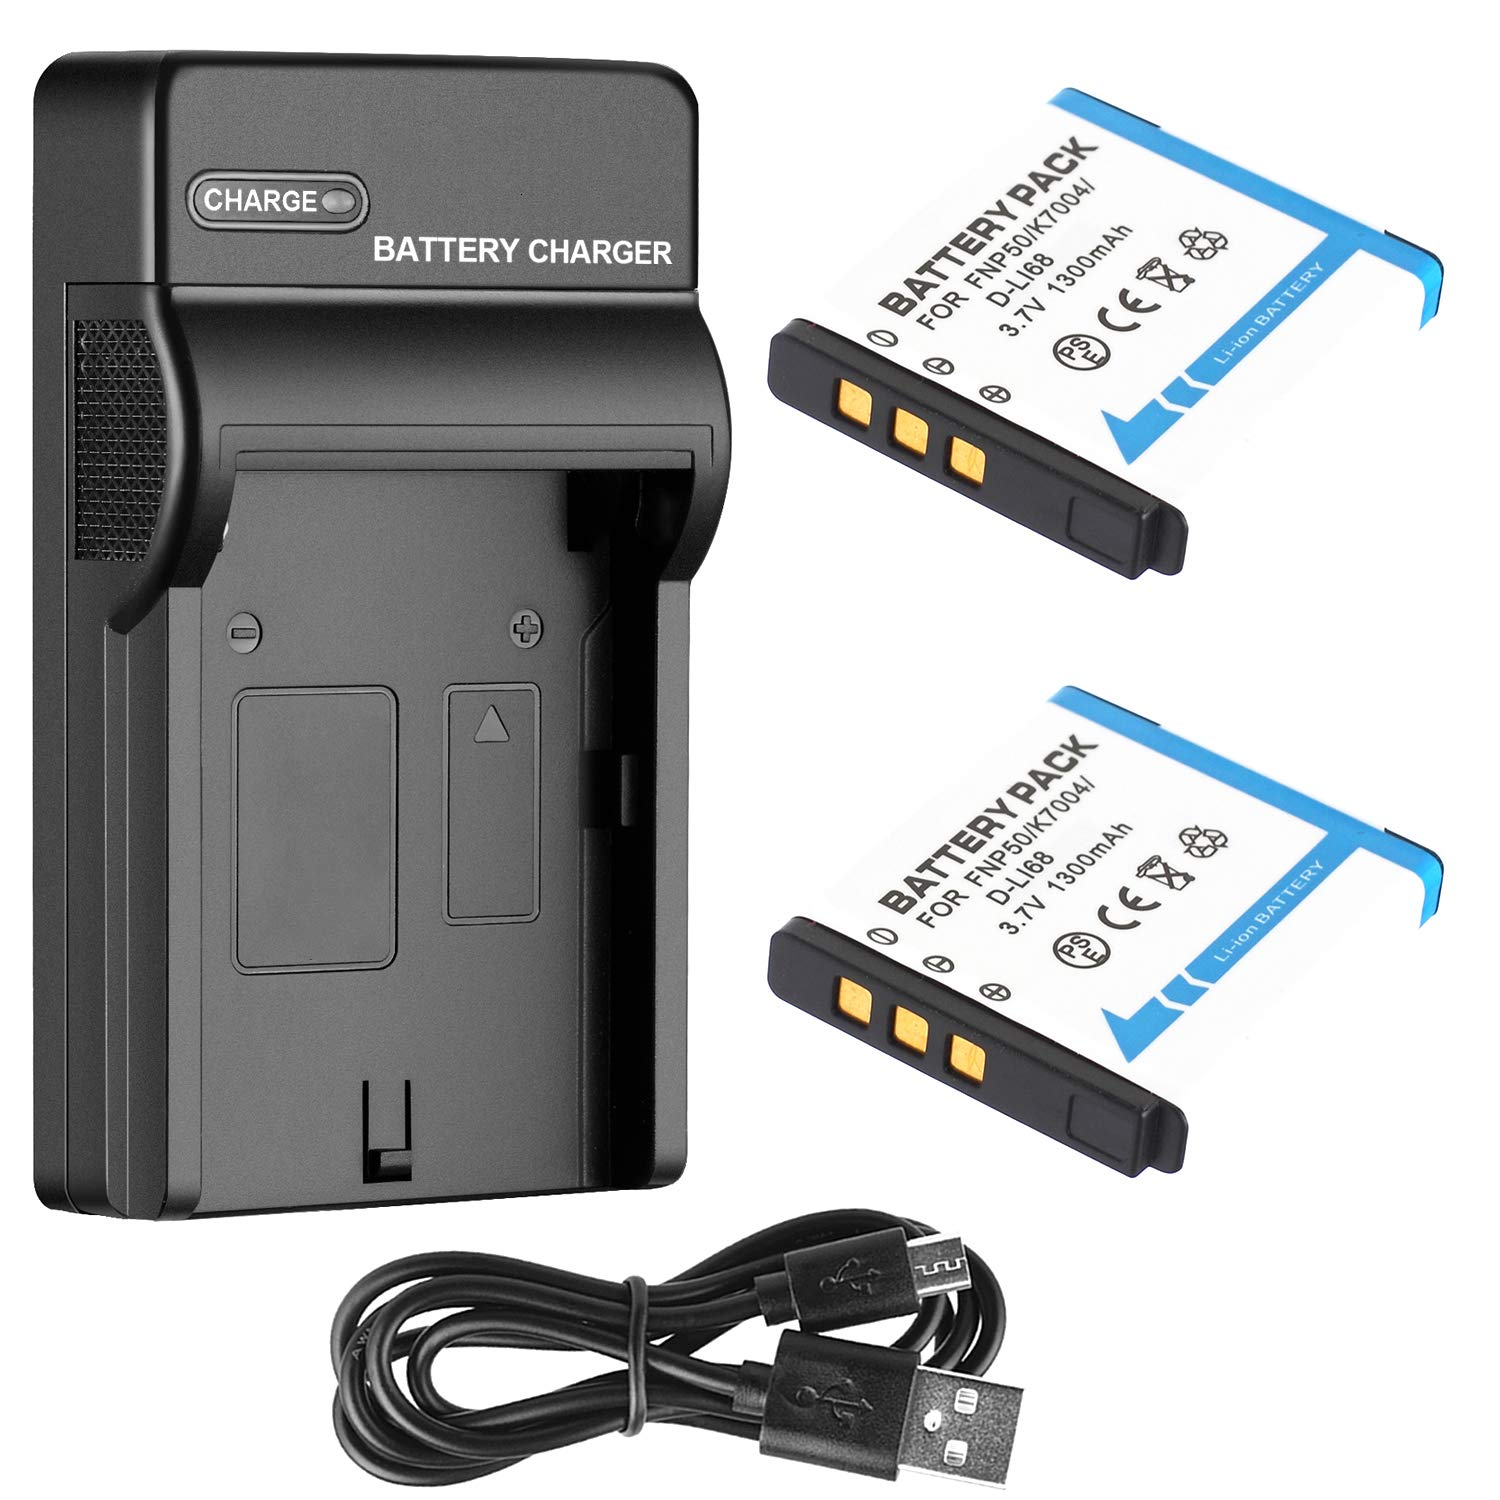 Amazon Com Battery 2 Pack And Usb Travel Charger For Fujifilm Finepix F300exr F305exr F500exr F505exr F550exr Digital Camera Camera Photo